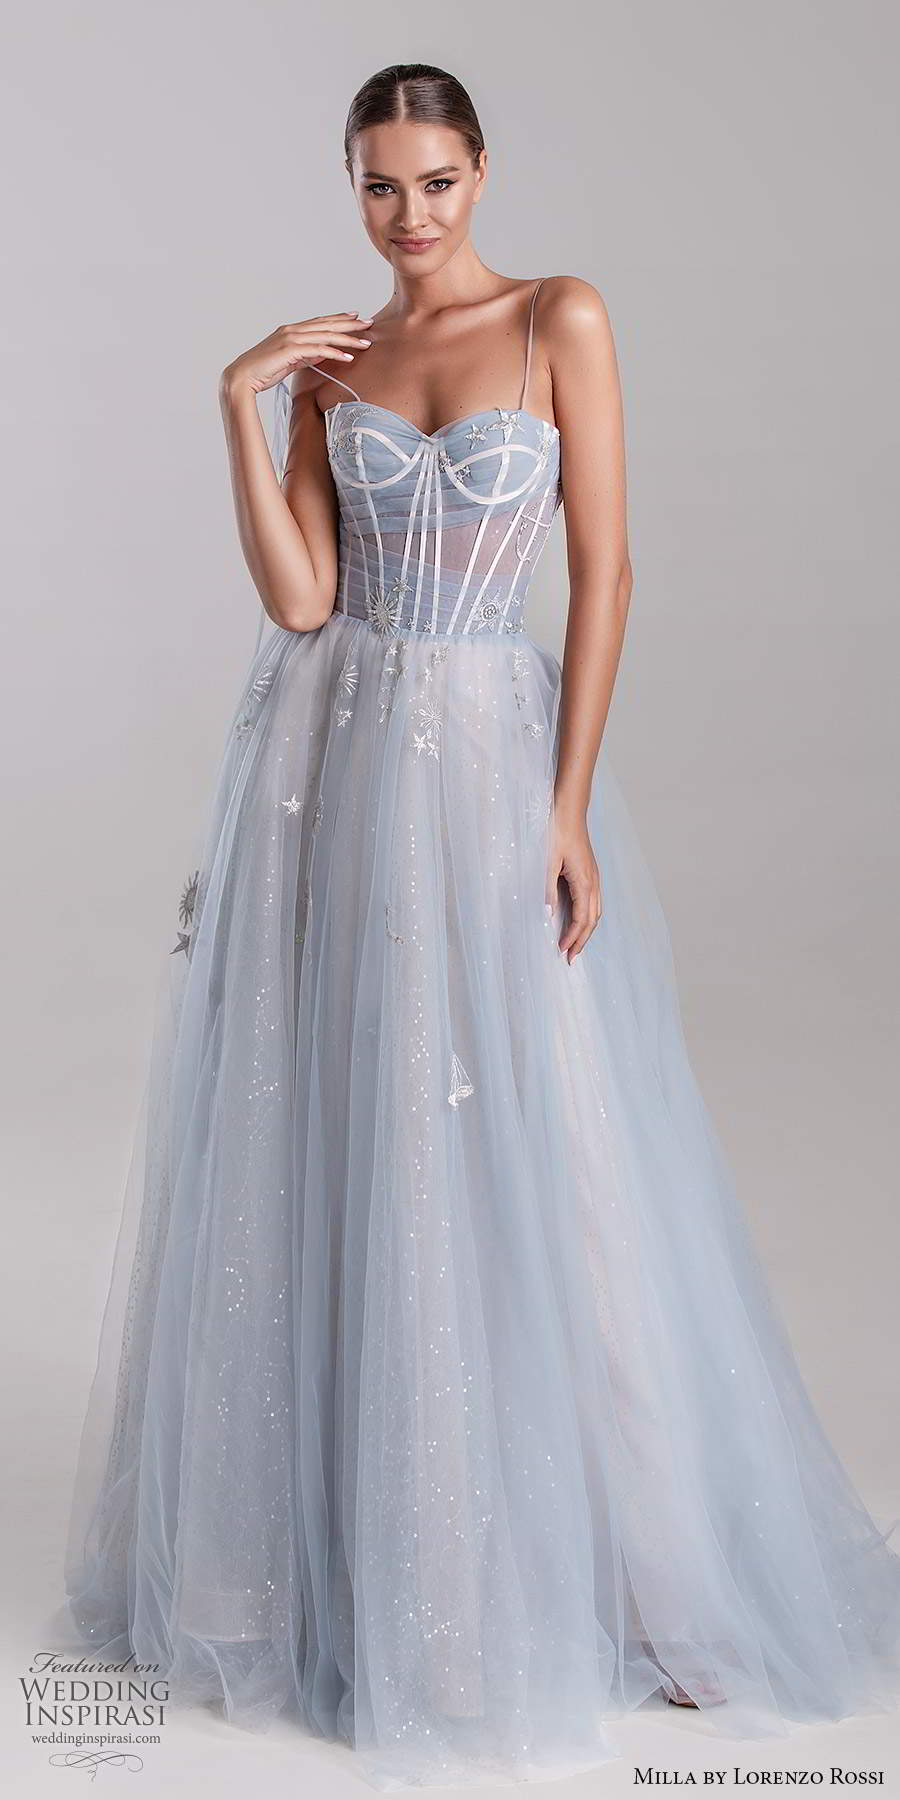 milla by lorenzo rossi 2020 rtw sleeveless thin straps semi sweetheart a line ball gown evening dress pale blue color (25) mv